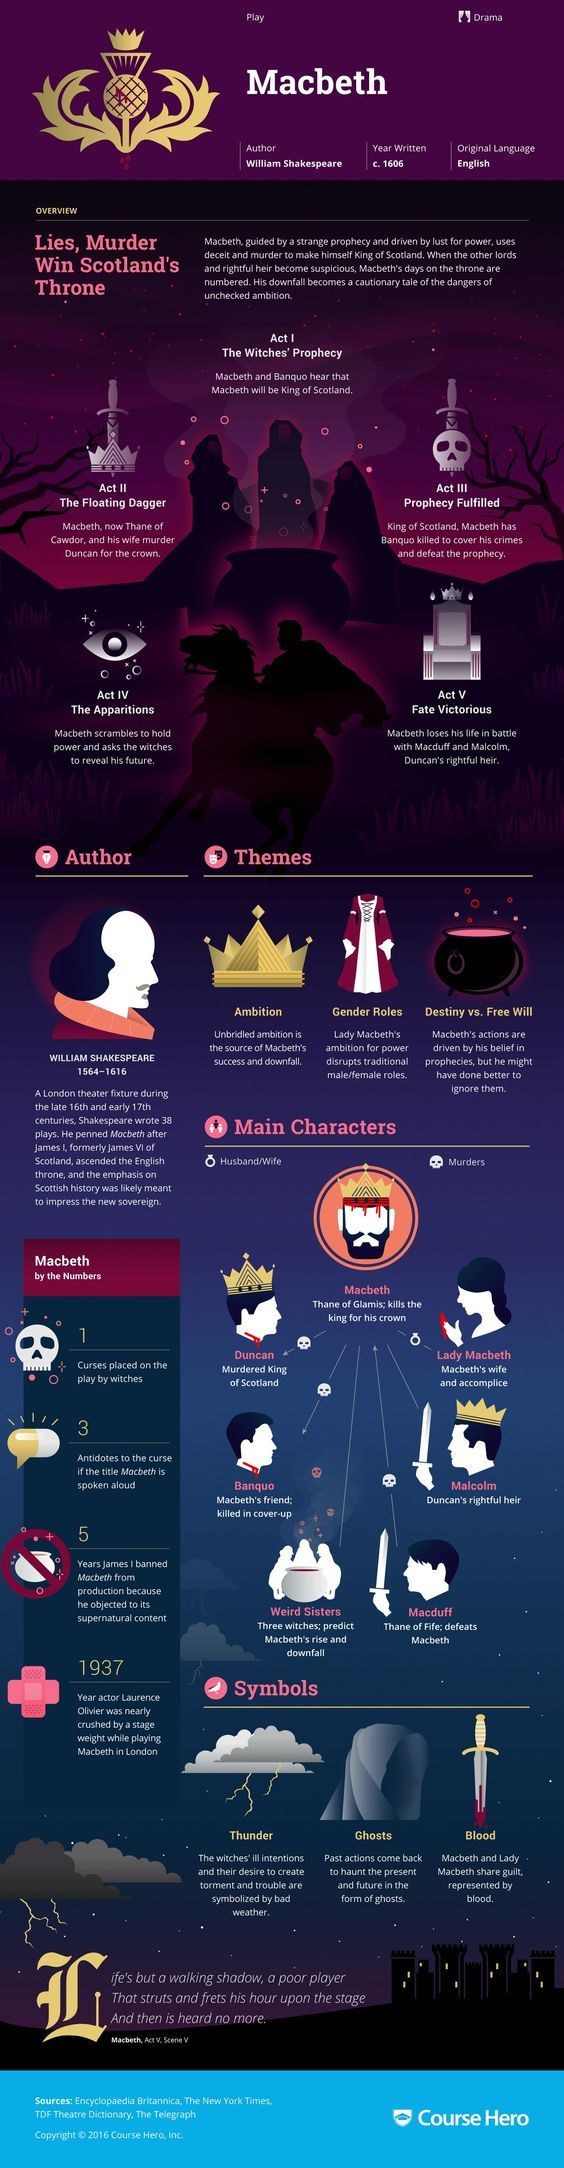 top ideas about macbeth william shakespeare study guide for william shakespeare s macbeth including scene summary character analysis and more learn all about macbeth ask questions